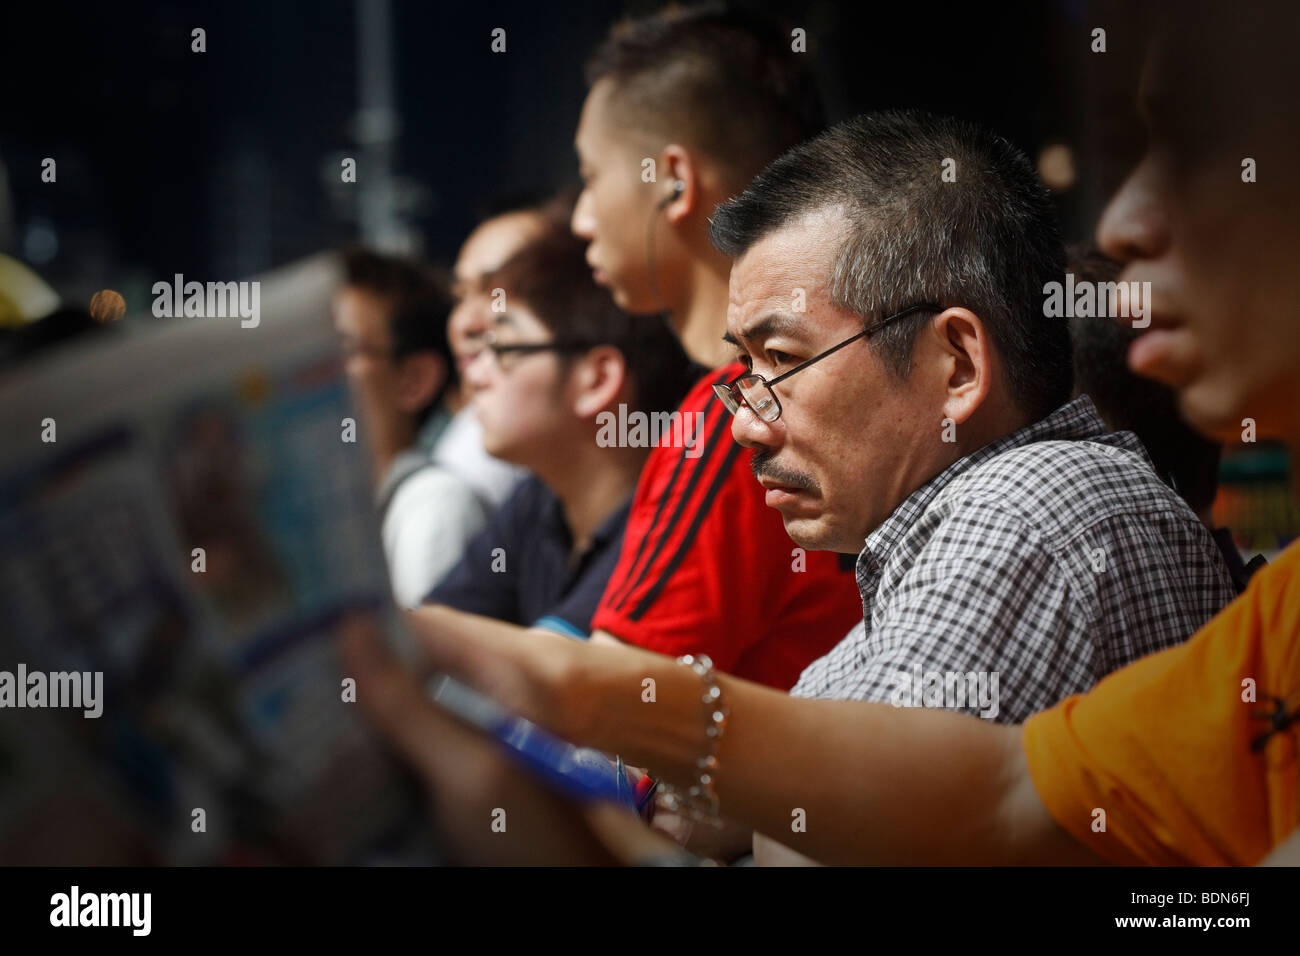 Punters study the race form at a night horse racing event at the Happy Valley race course in Hong Kong. - Stock Image